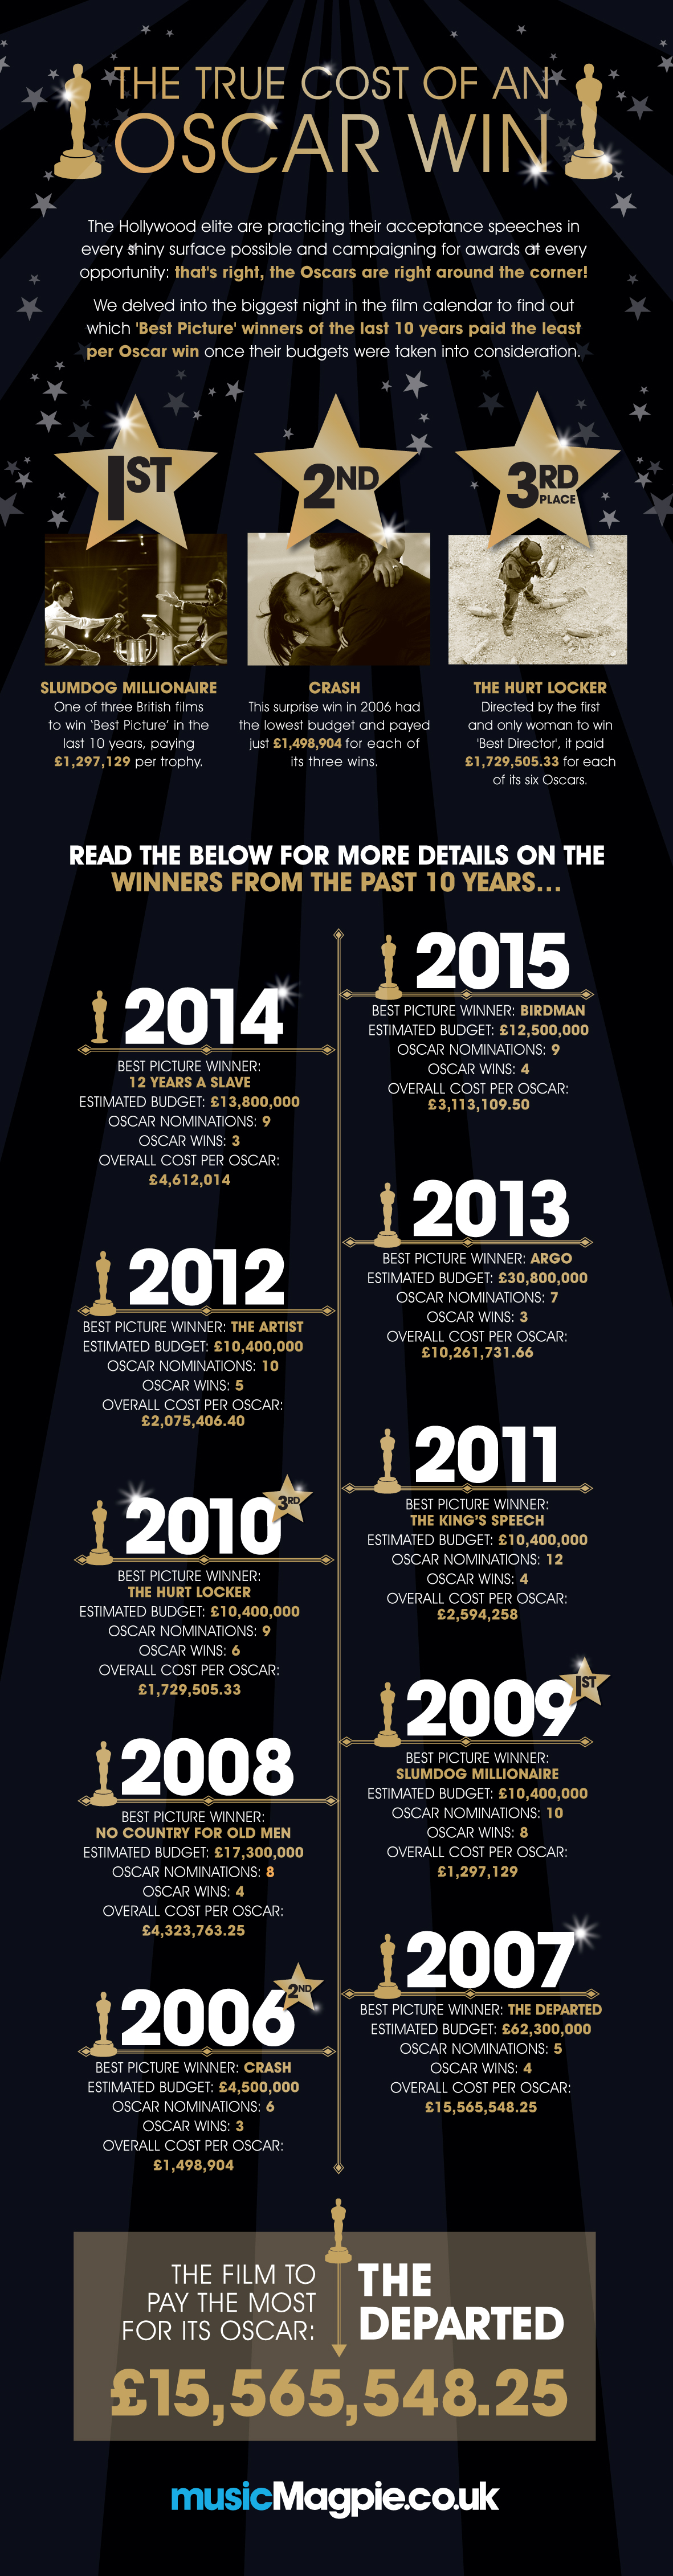 The Oscars Infographic